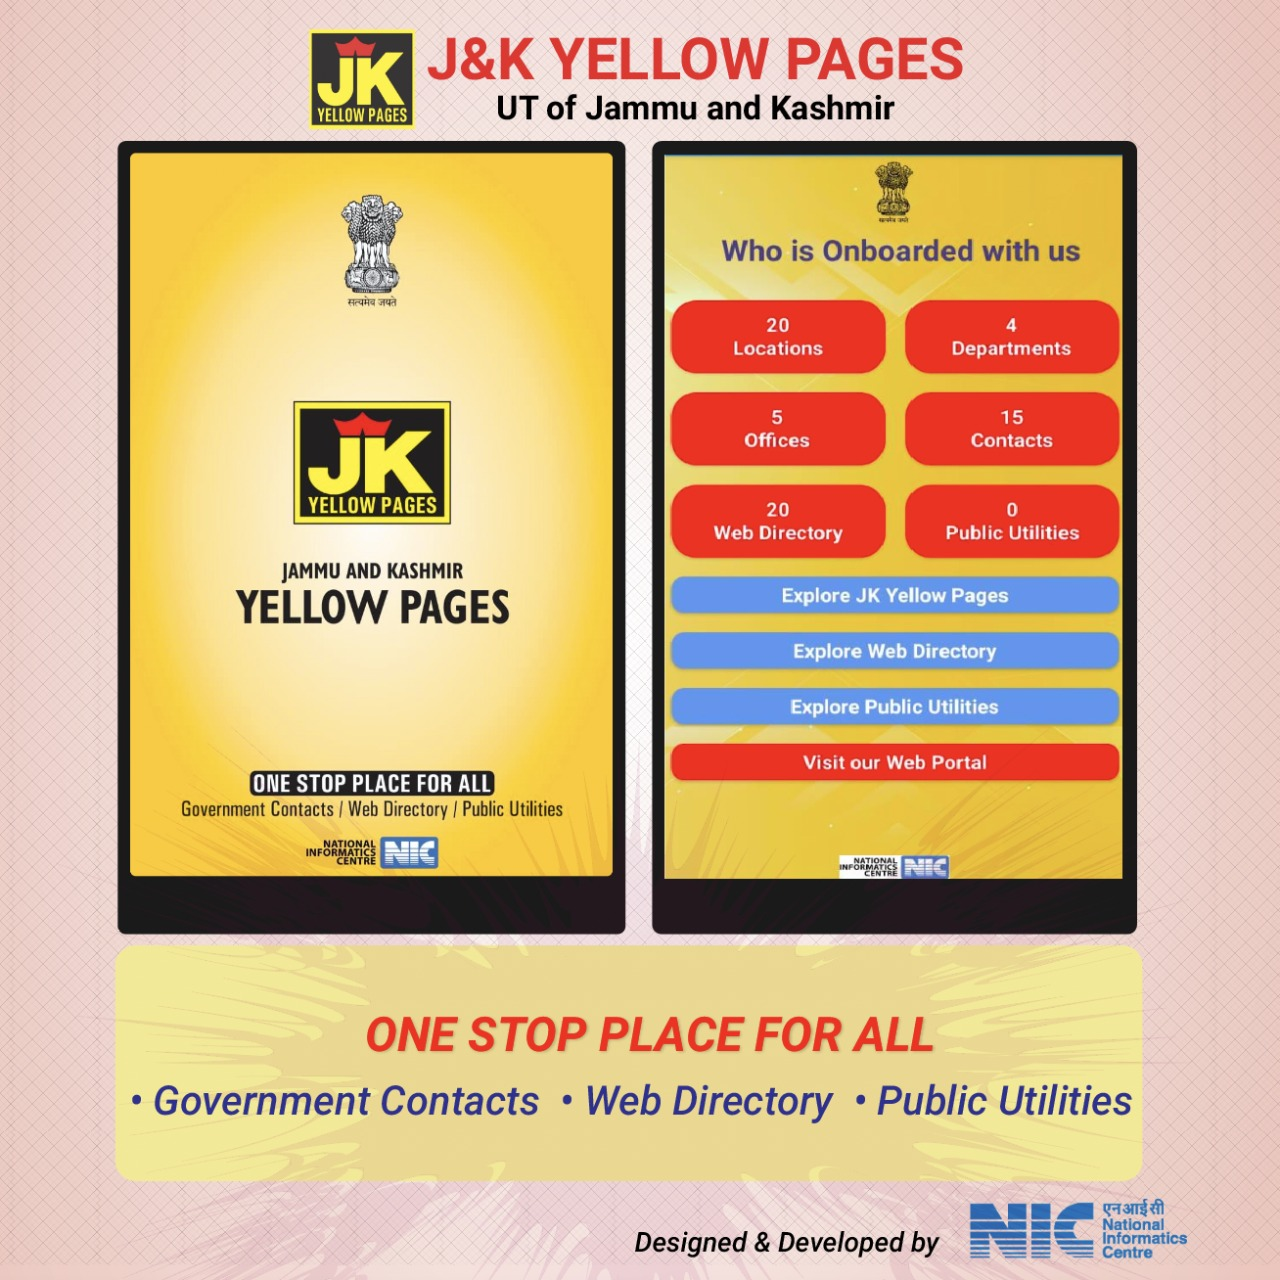 Image of NIC developed Yellow Pages mobile app launched in the UT of J&K.